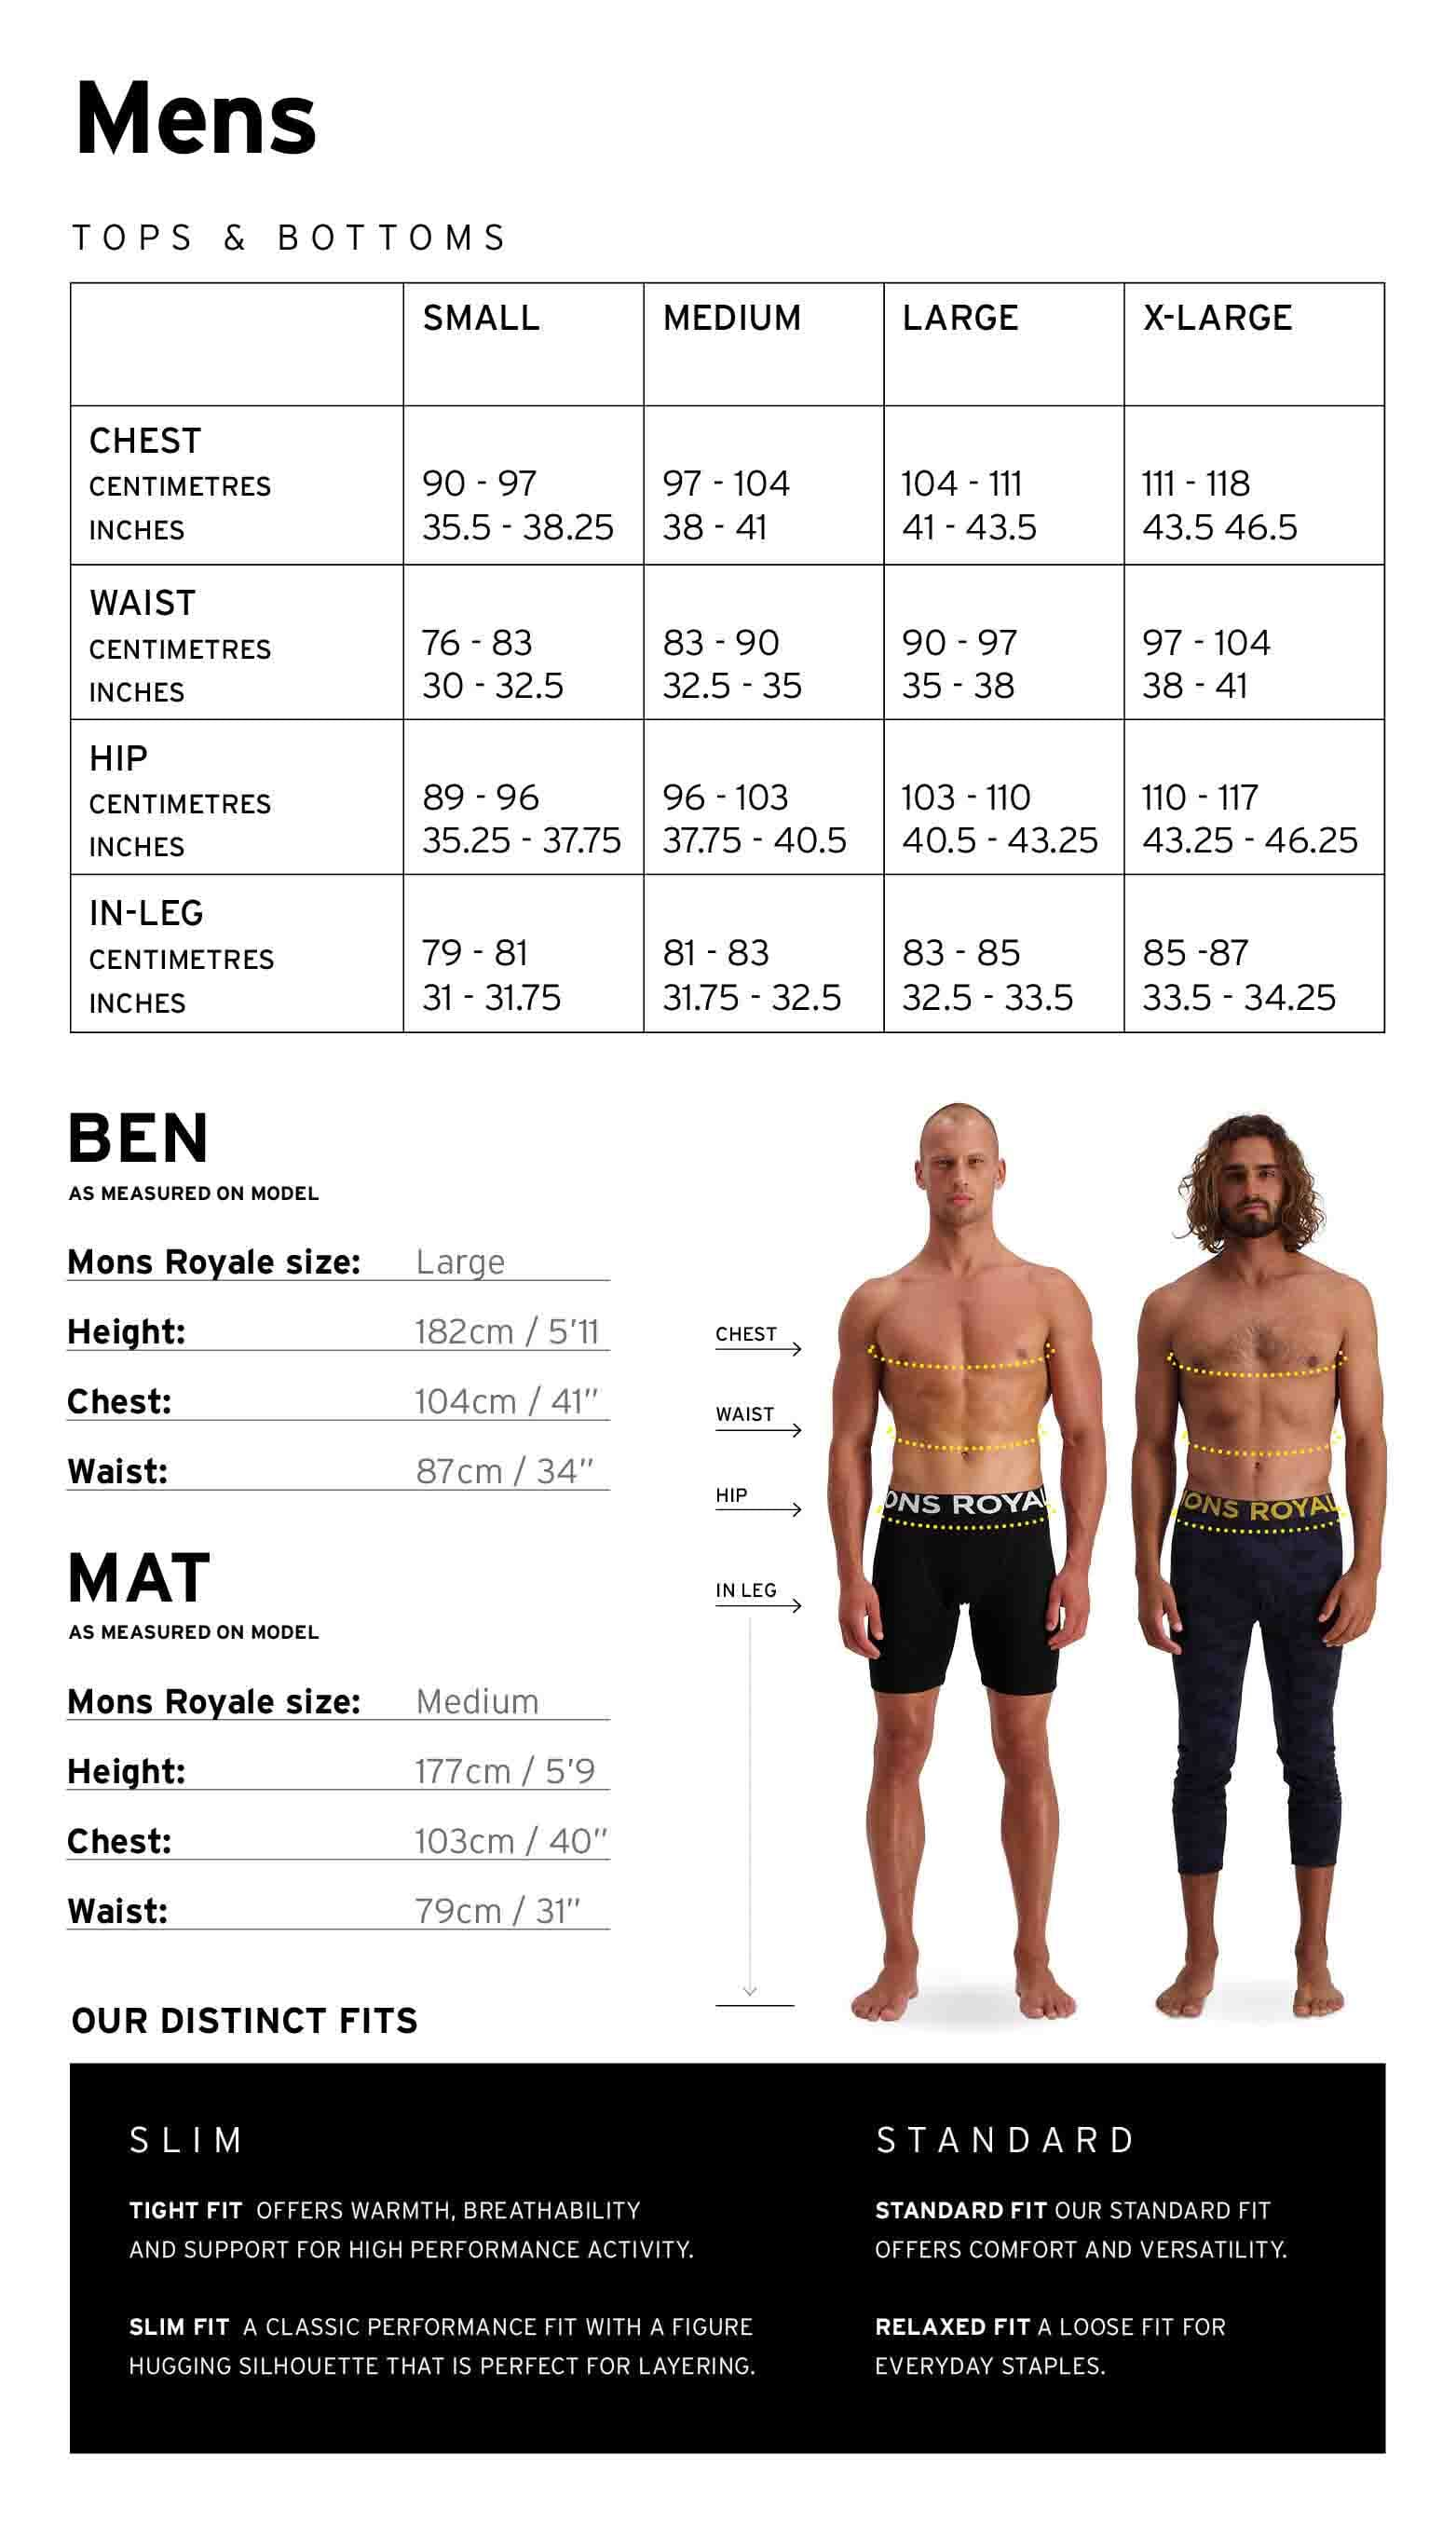 Mons Royale Mens Size Chart